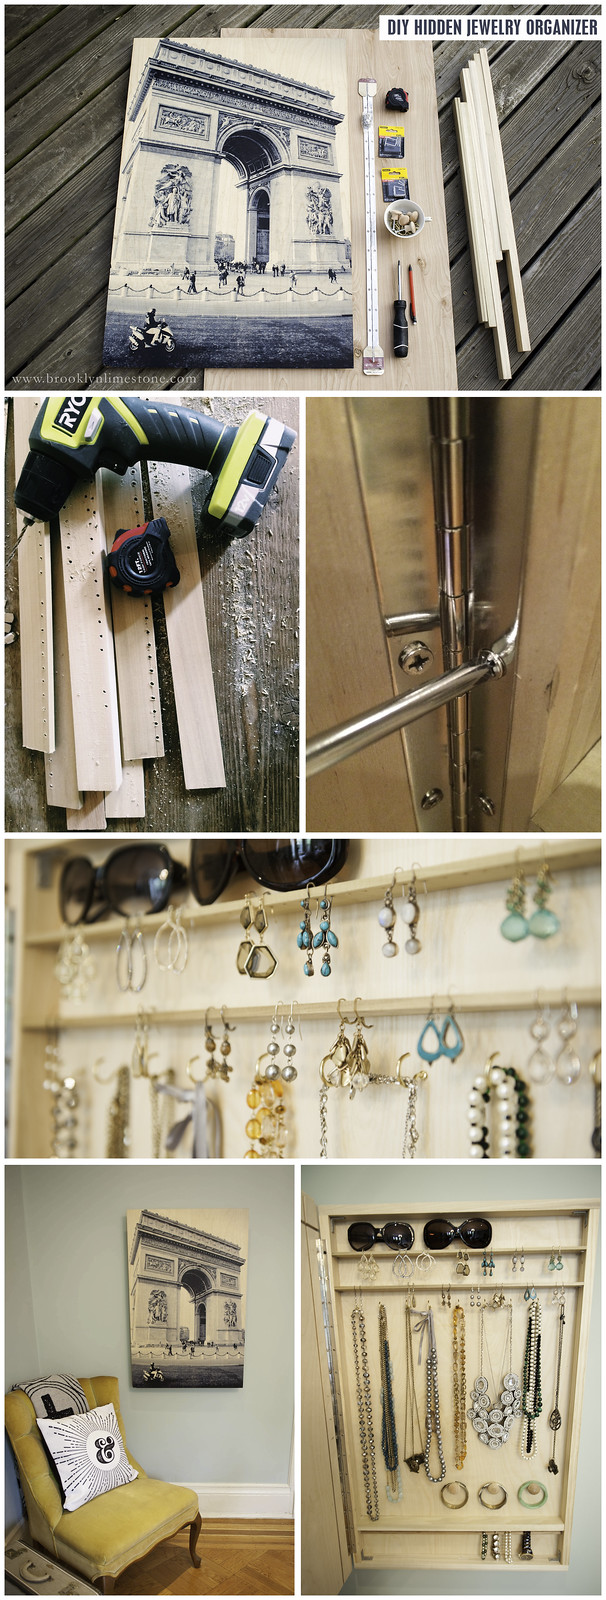 Hide your accessories behind your favorite photo with this easy to make DIY Hidden Jewelry Organizer